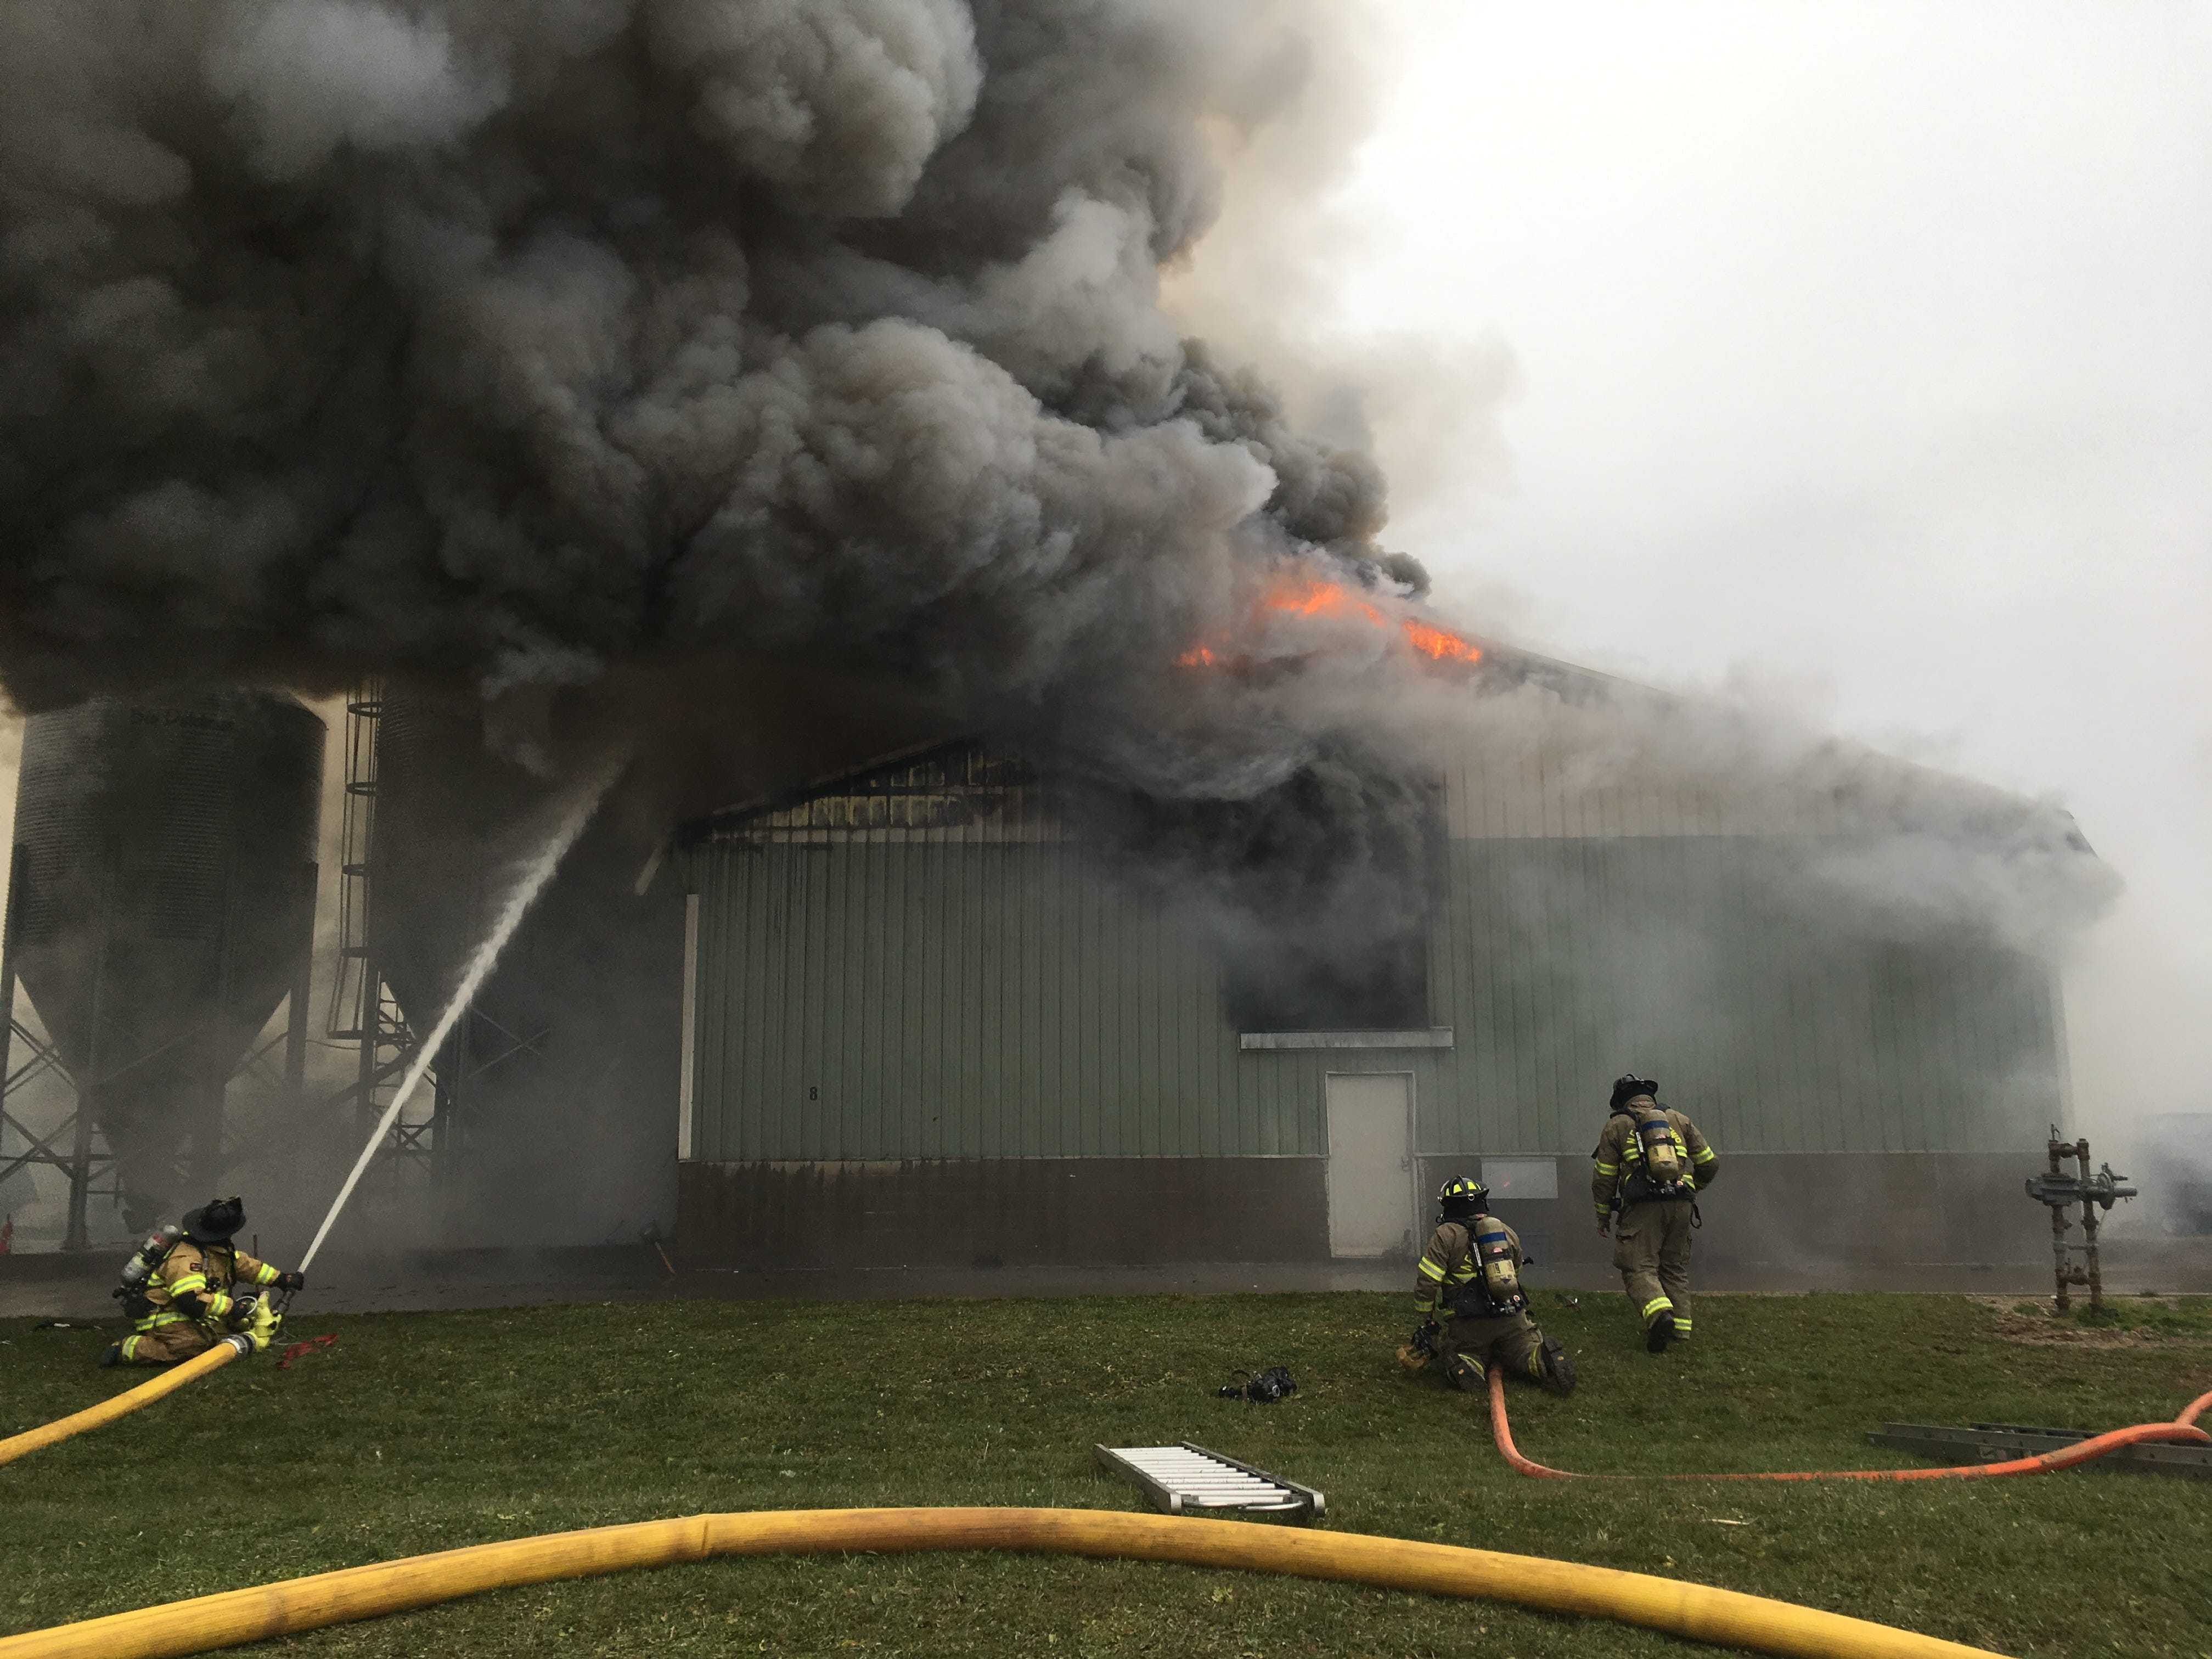 A chicken tries to re-enter the burning barn at Trillium Farms in Croton as firefighters work to contain the blaze on Nov. 30, 2018.